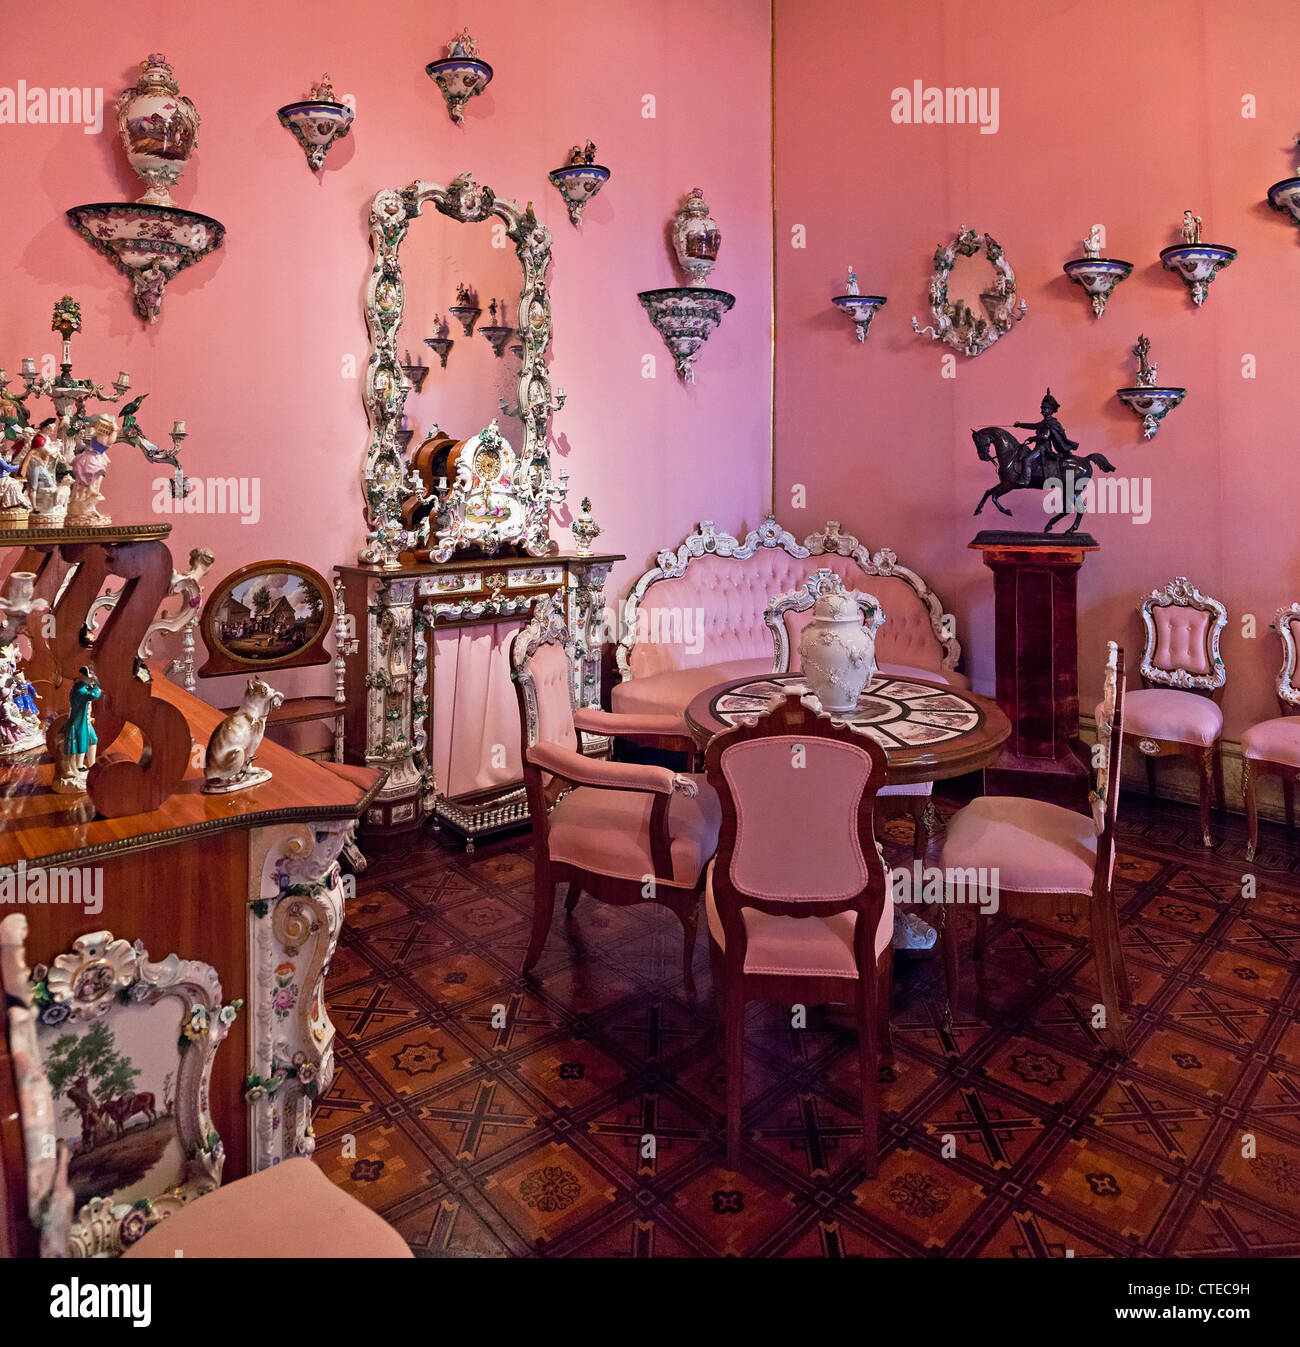 Saxe Room Imágenes De Stock & Saxe Room Fotos De Stock - Alamy